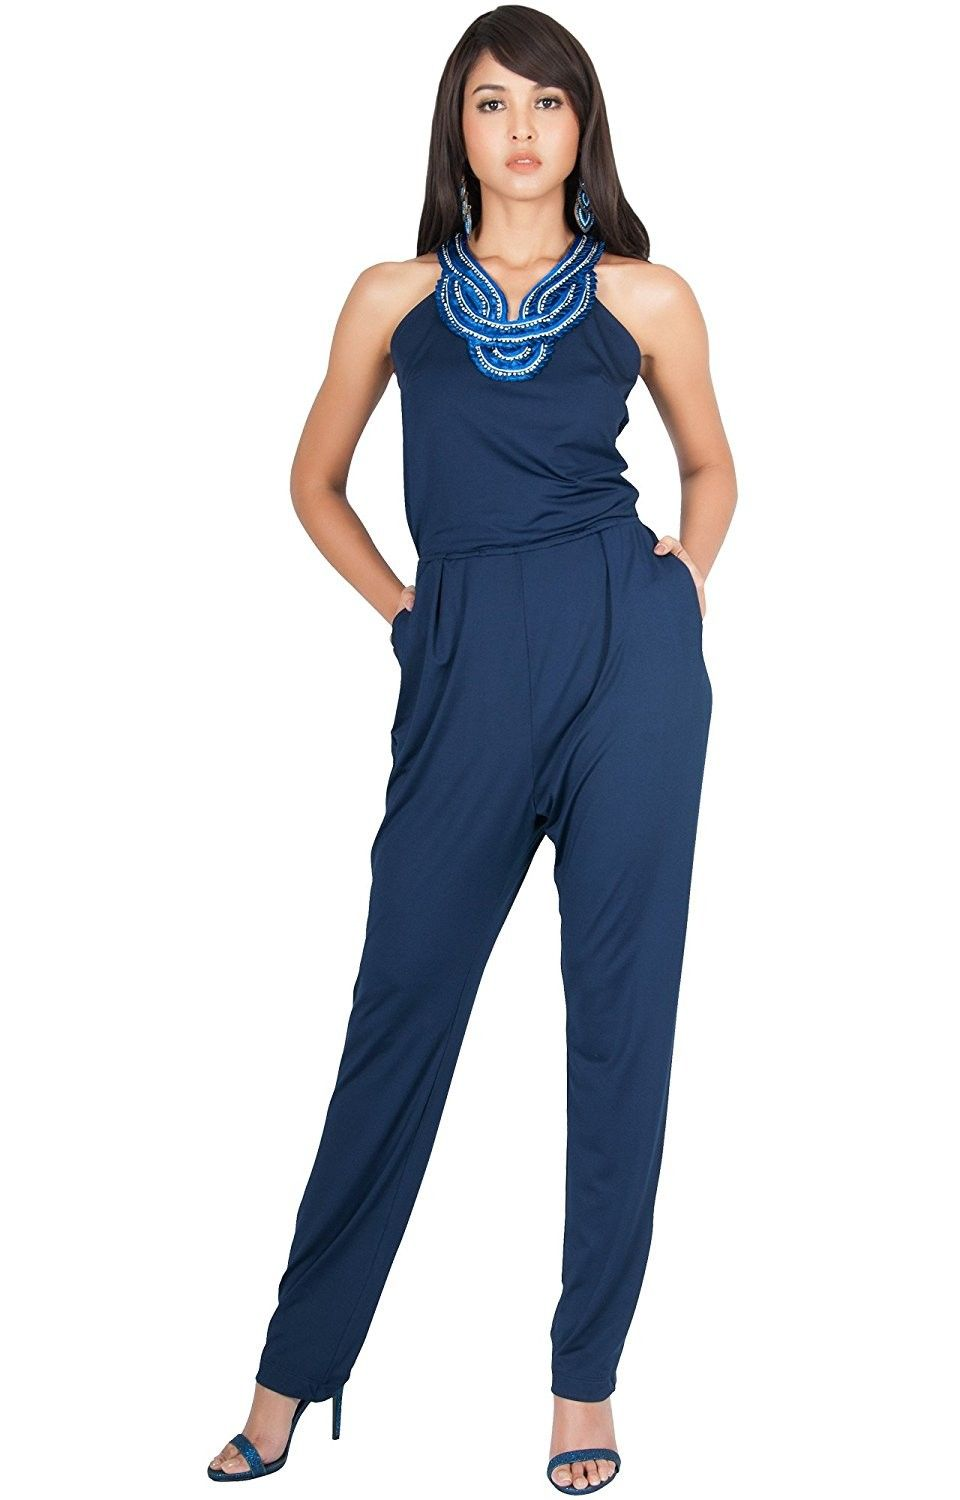 9249bf949396 Womens Sleeveless Long Cute Sexy Cocktail Party Pantsuit Jumpsuit Romper -  Navy Blue - CV18255Z228